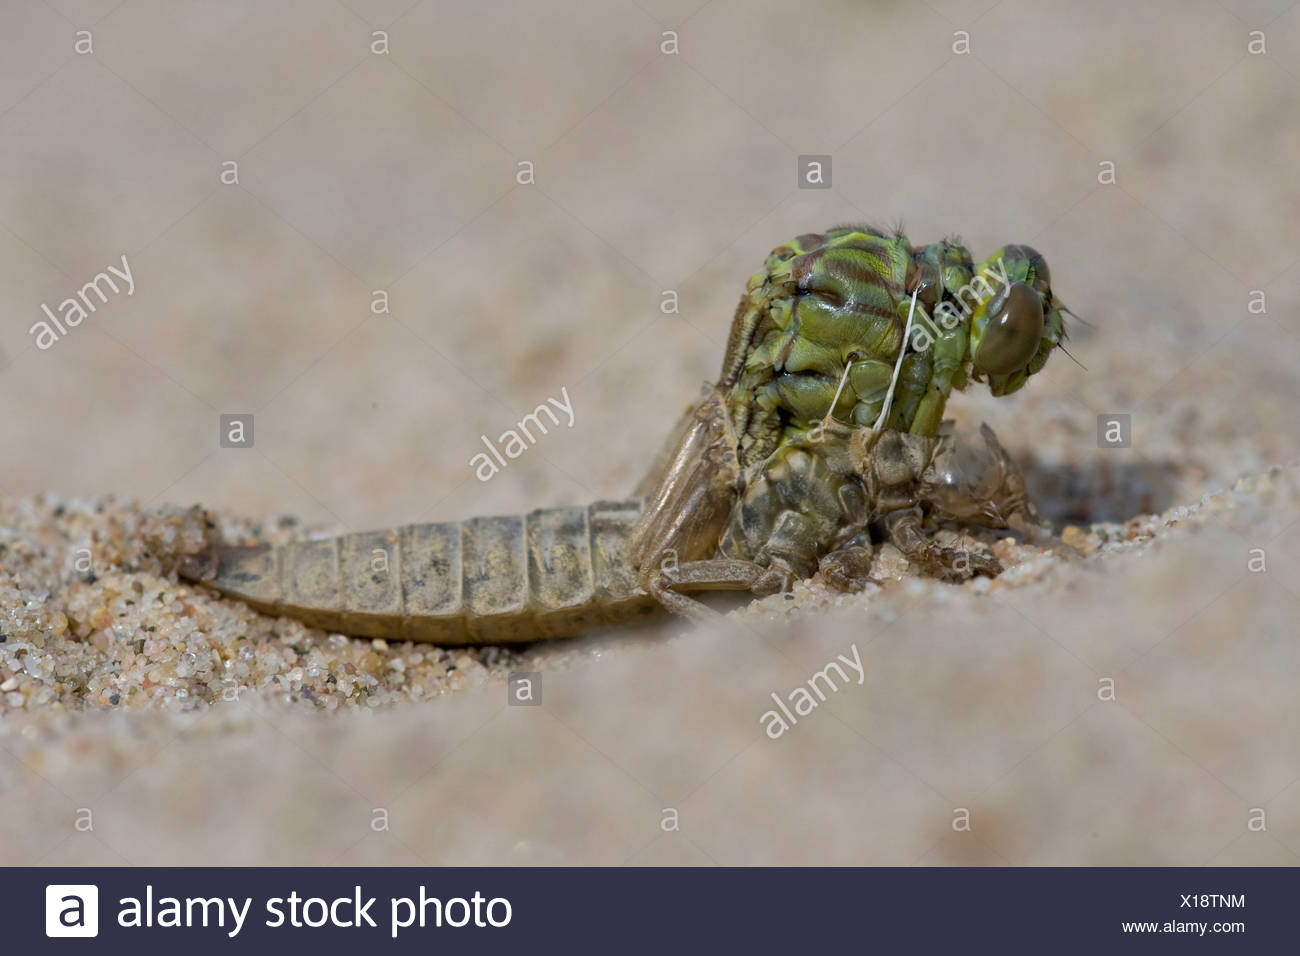 Emerging River Clubtail (5/12); emerging, after 3 minutes; UItsluipende Rivierrombout (5/12); uitsluipend; na 3 minuten - Stock Image